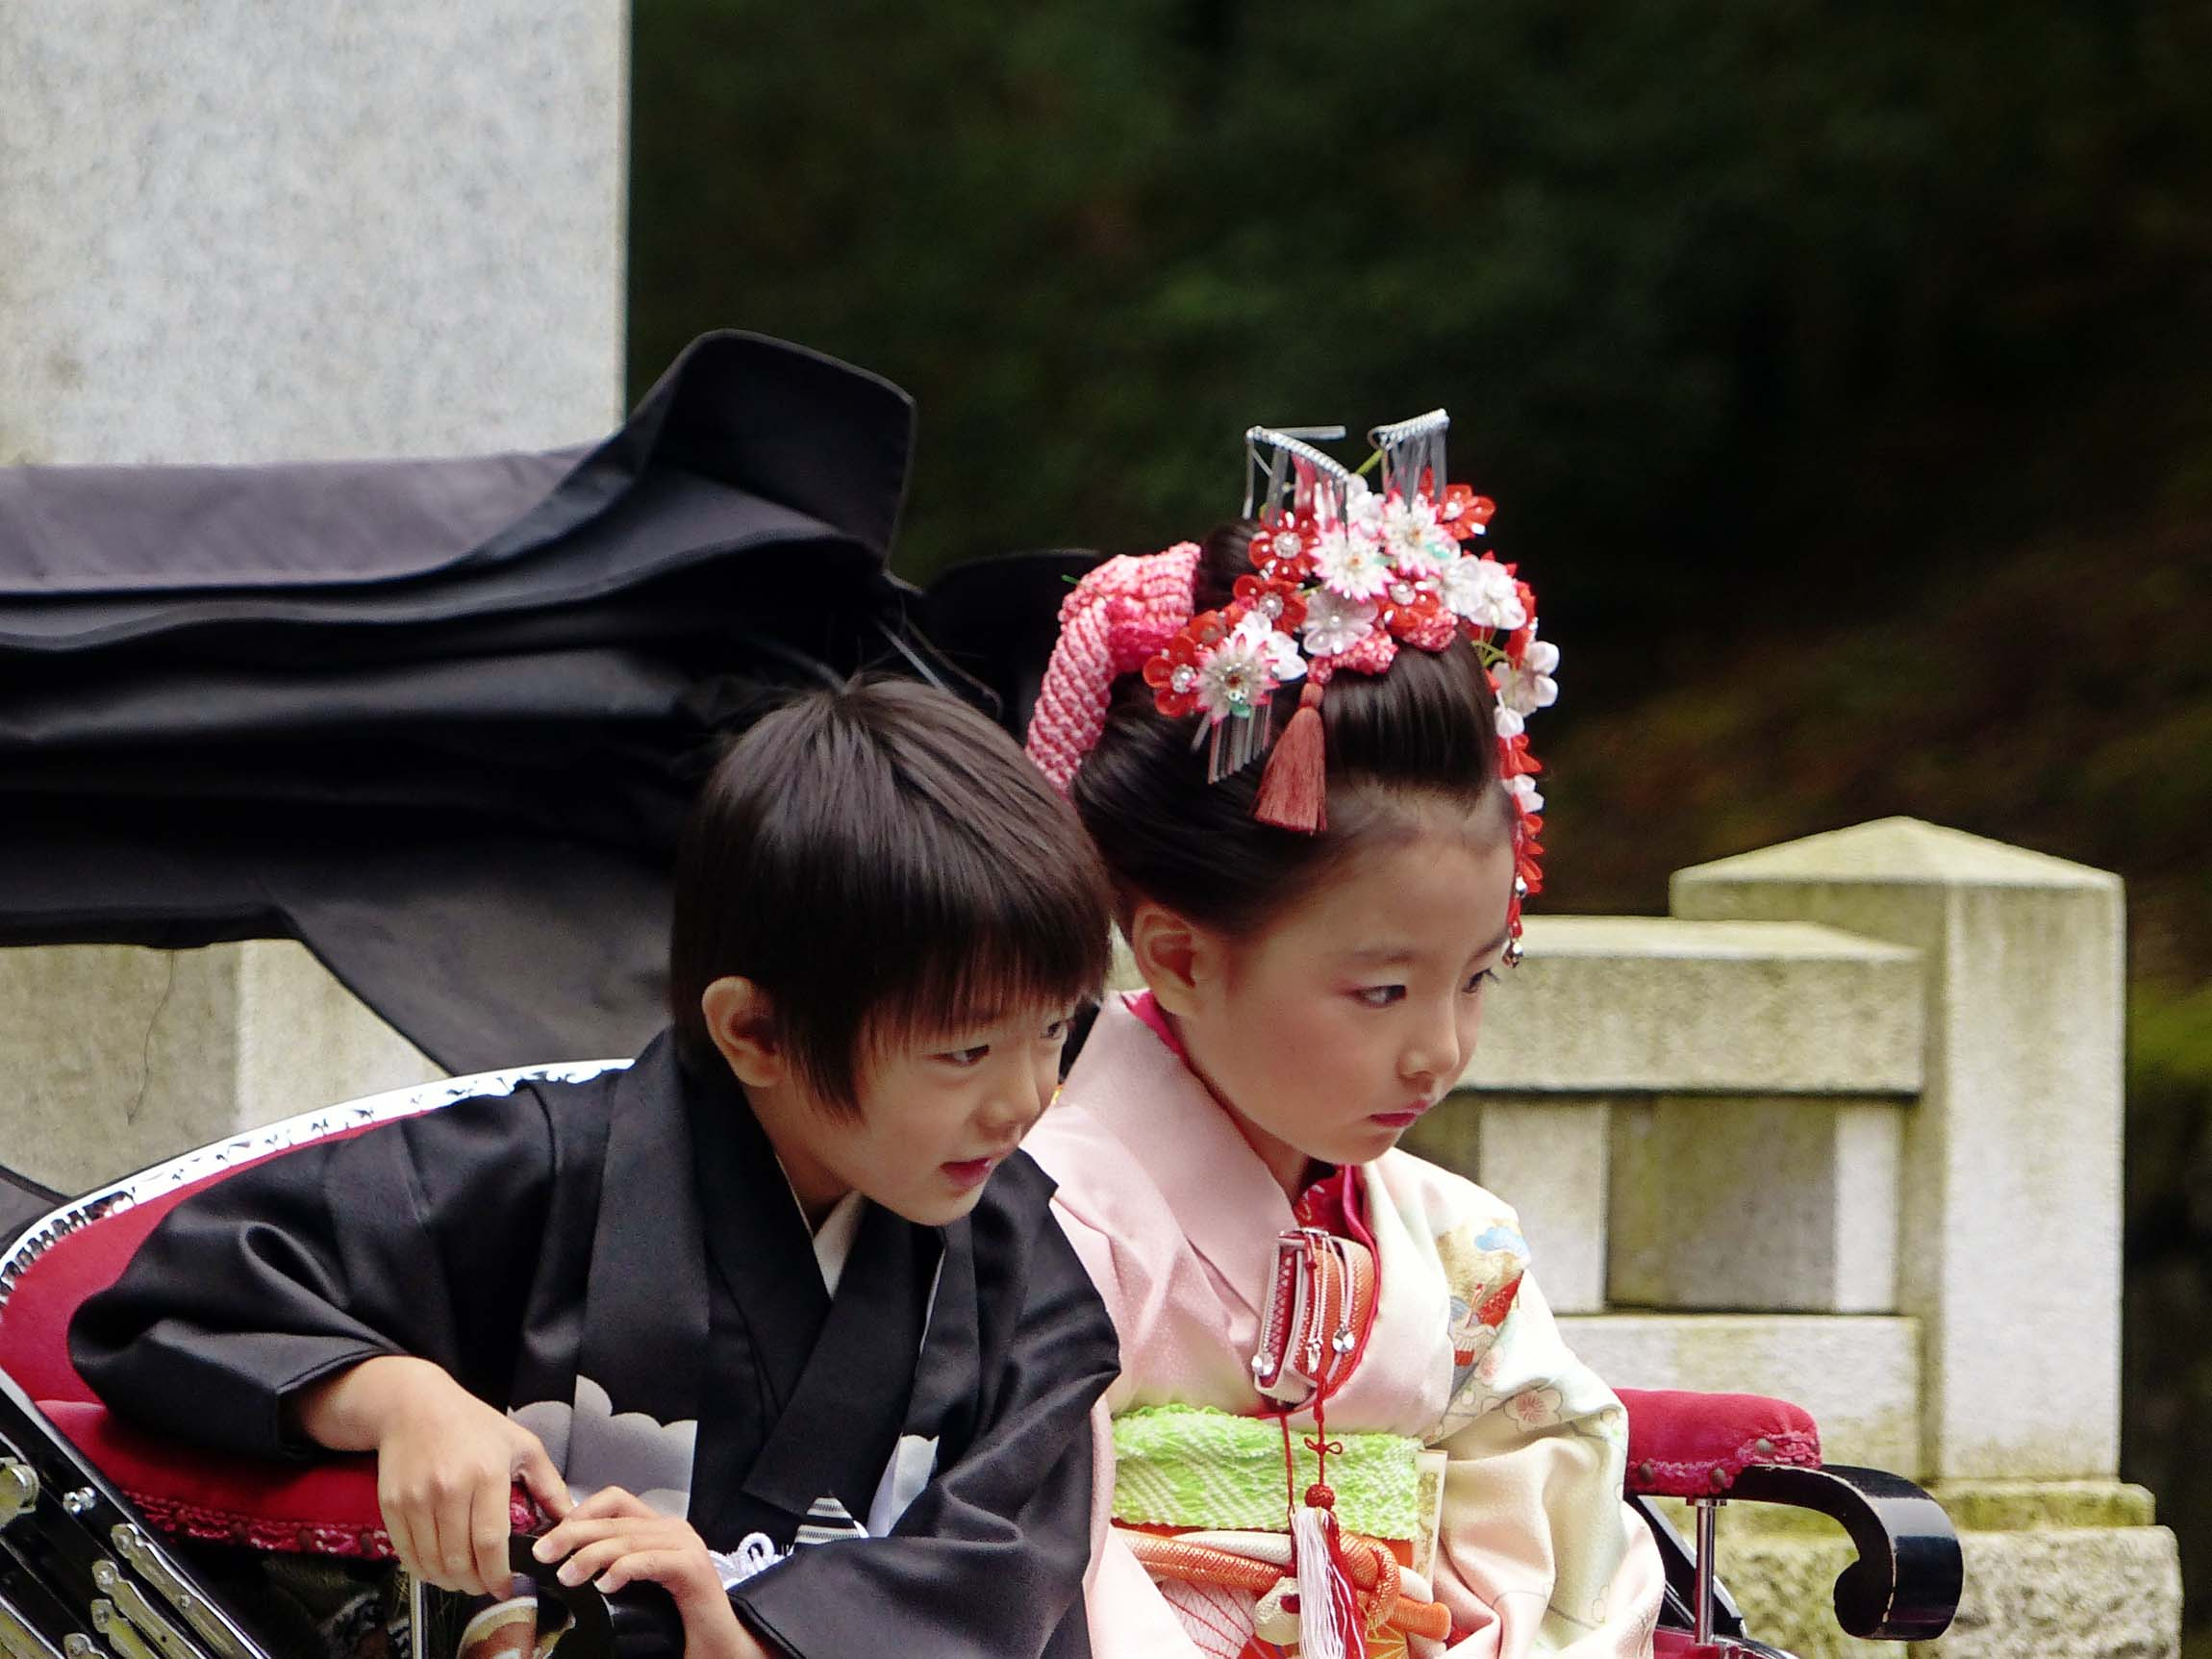 Little boy and girl in Japanese costume